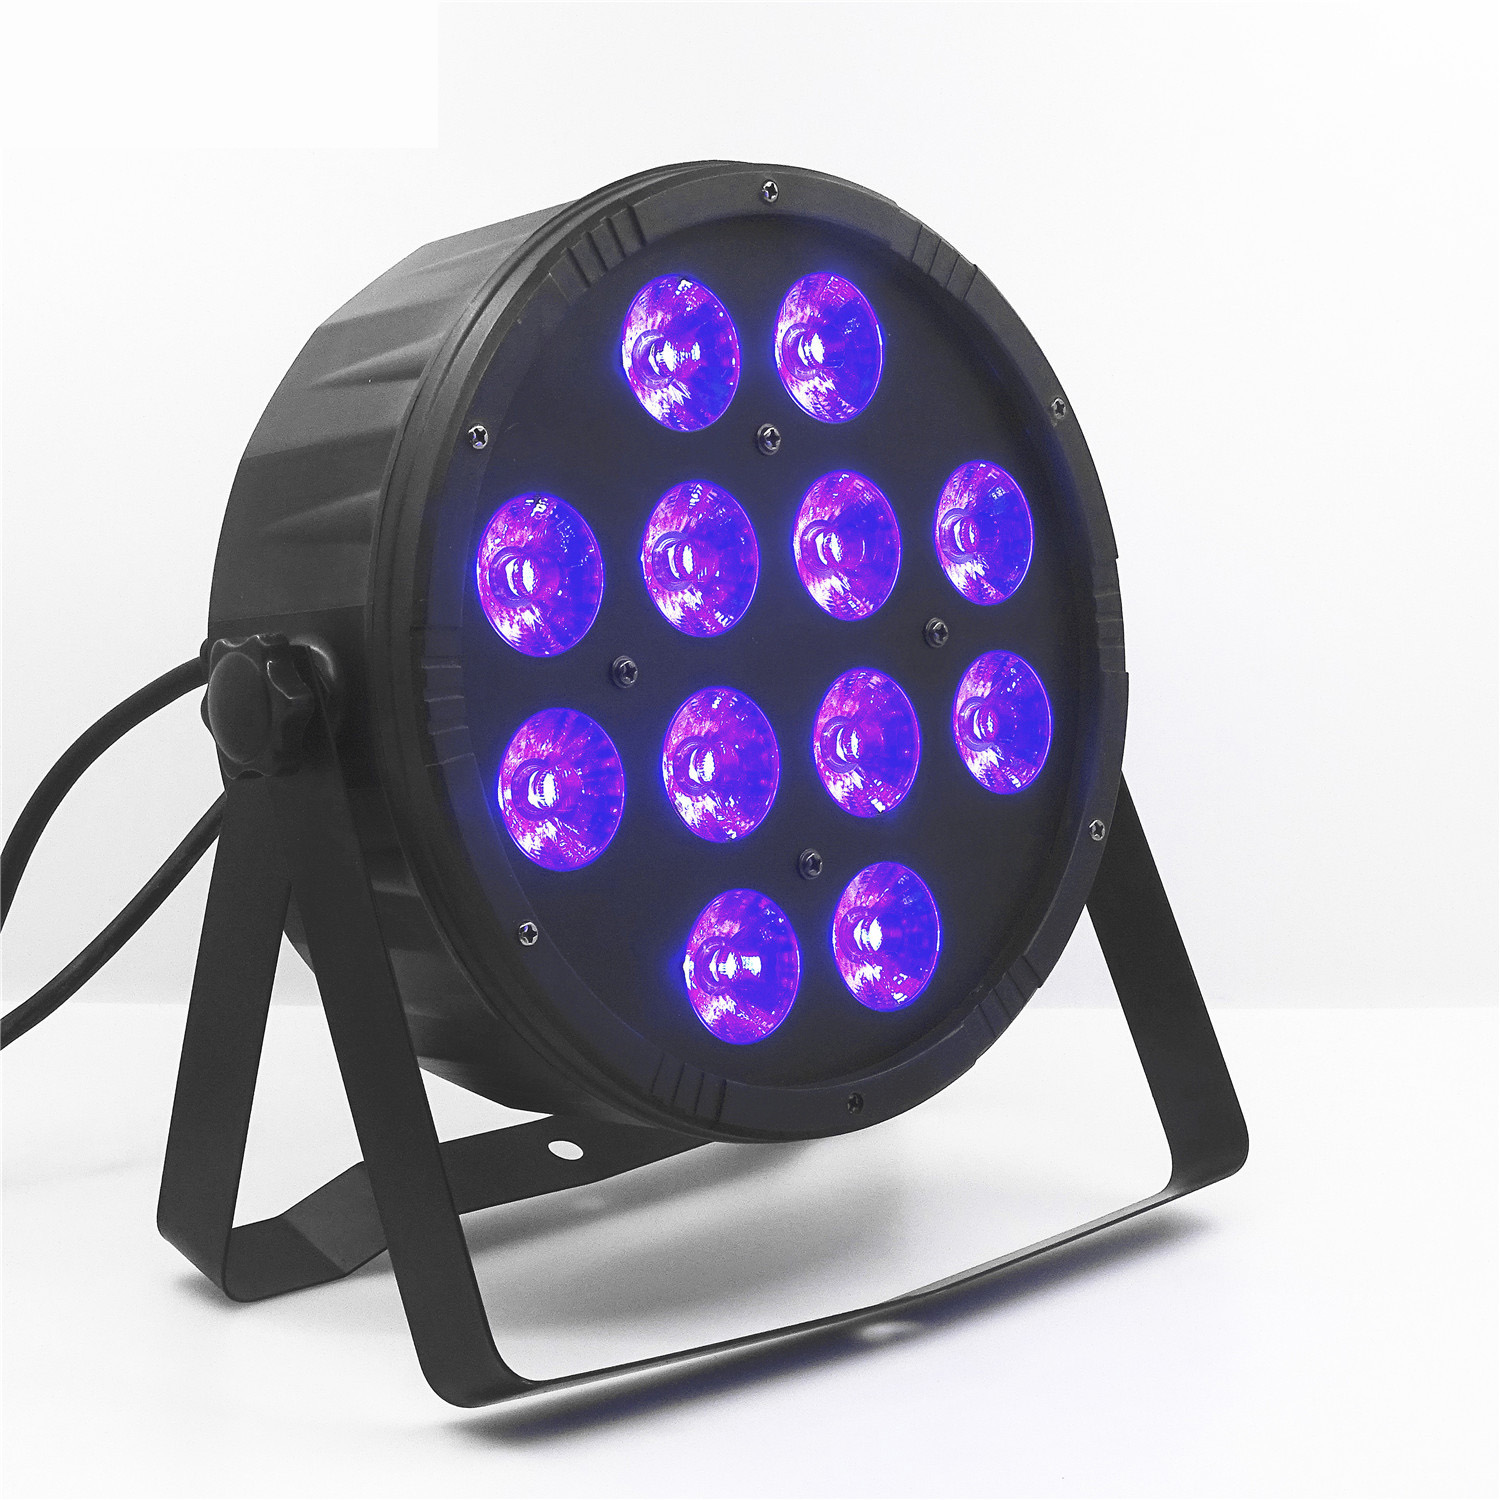 12 A 12w Plastic Flat <font><b>Led</b></font> <font><b>Par</b></font> RGBW 4in1 Four-in-One <font><b>12x12w</b></font> Professional Stage Lighting Equipment image